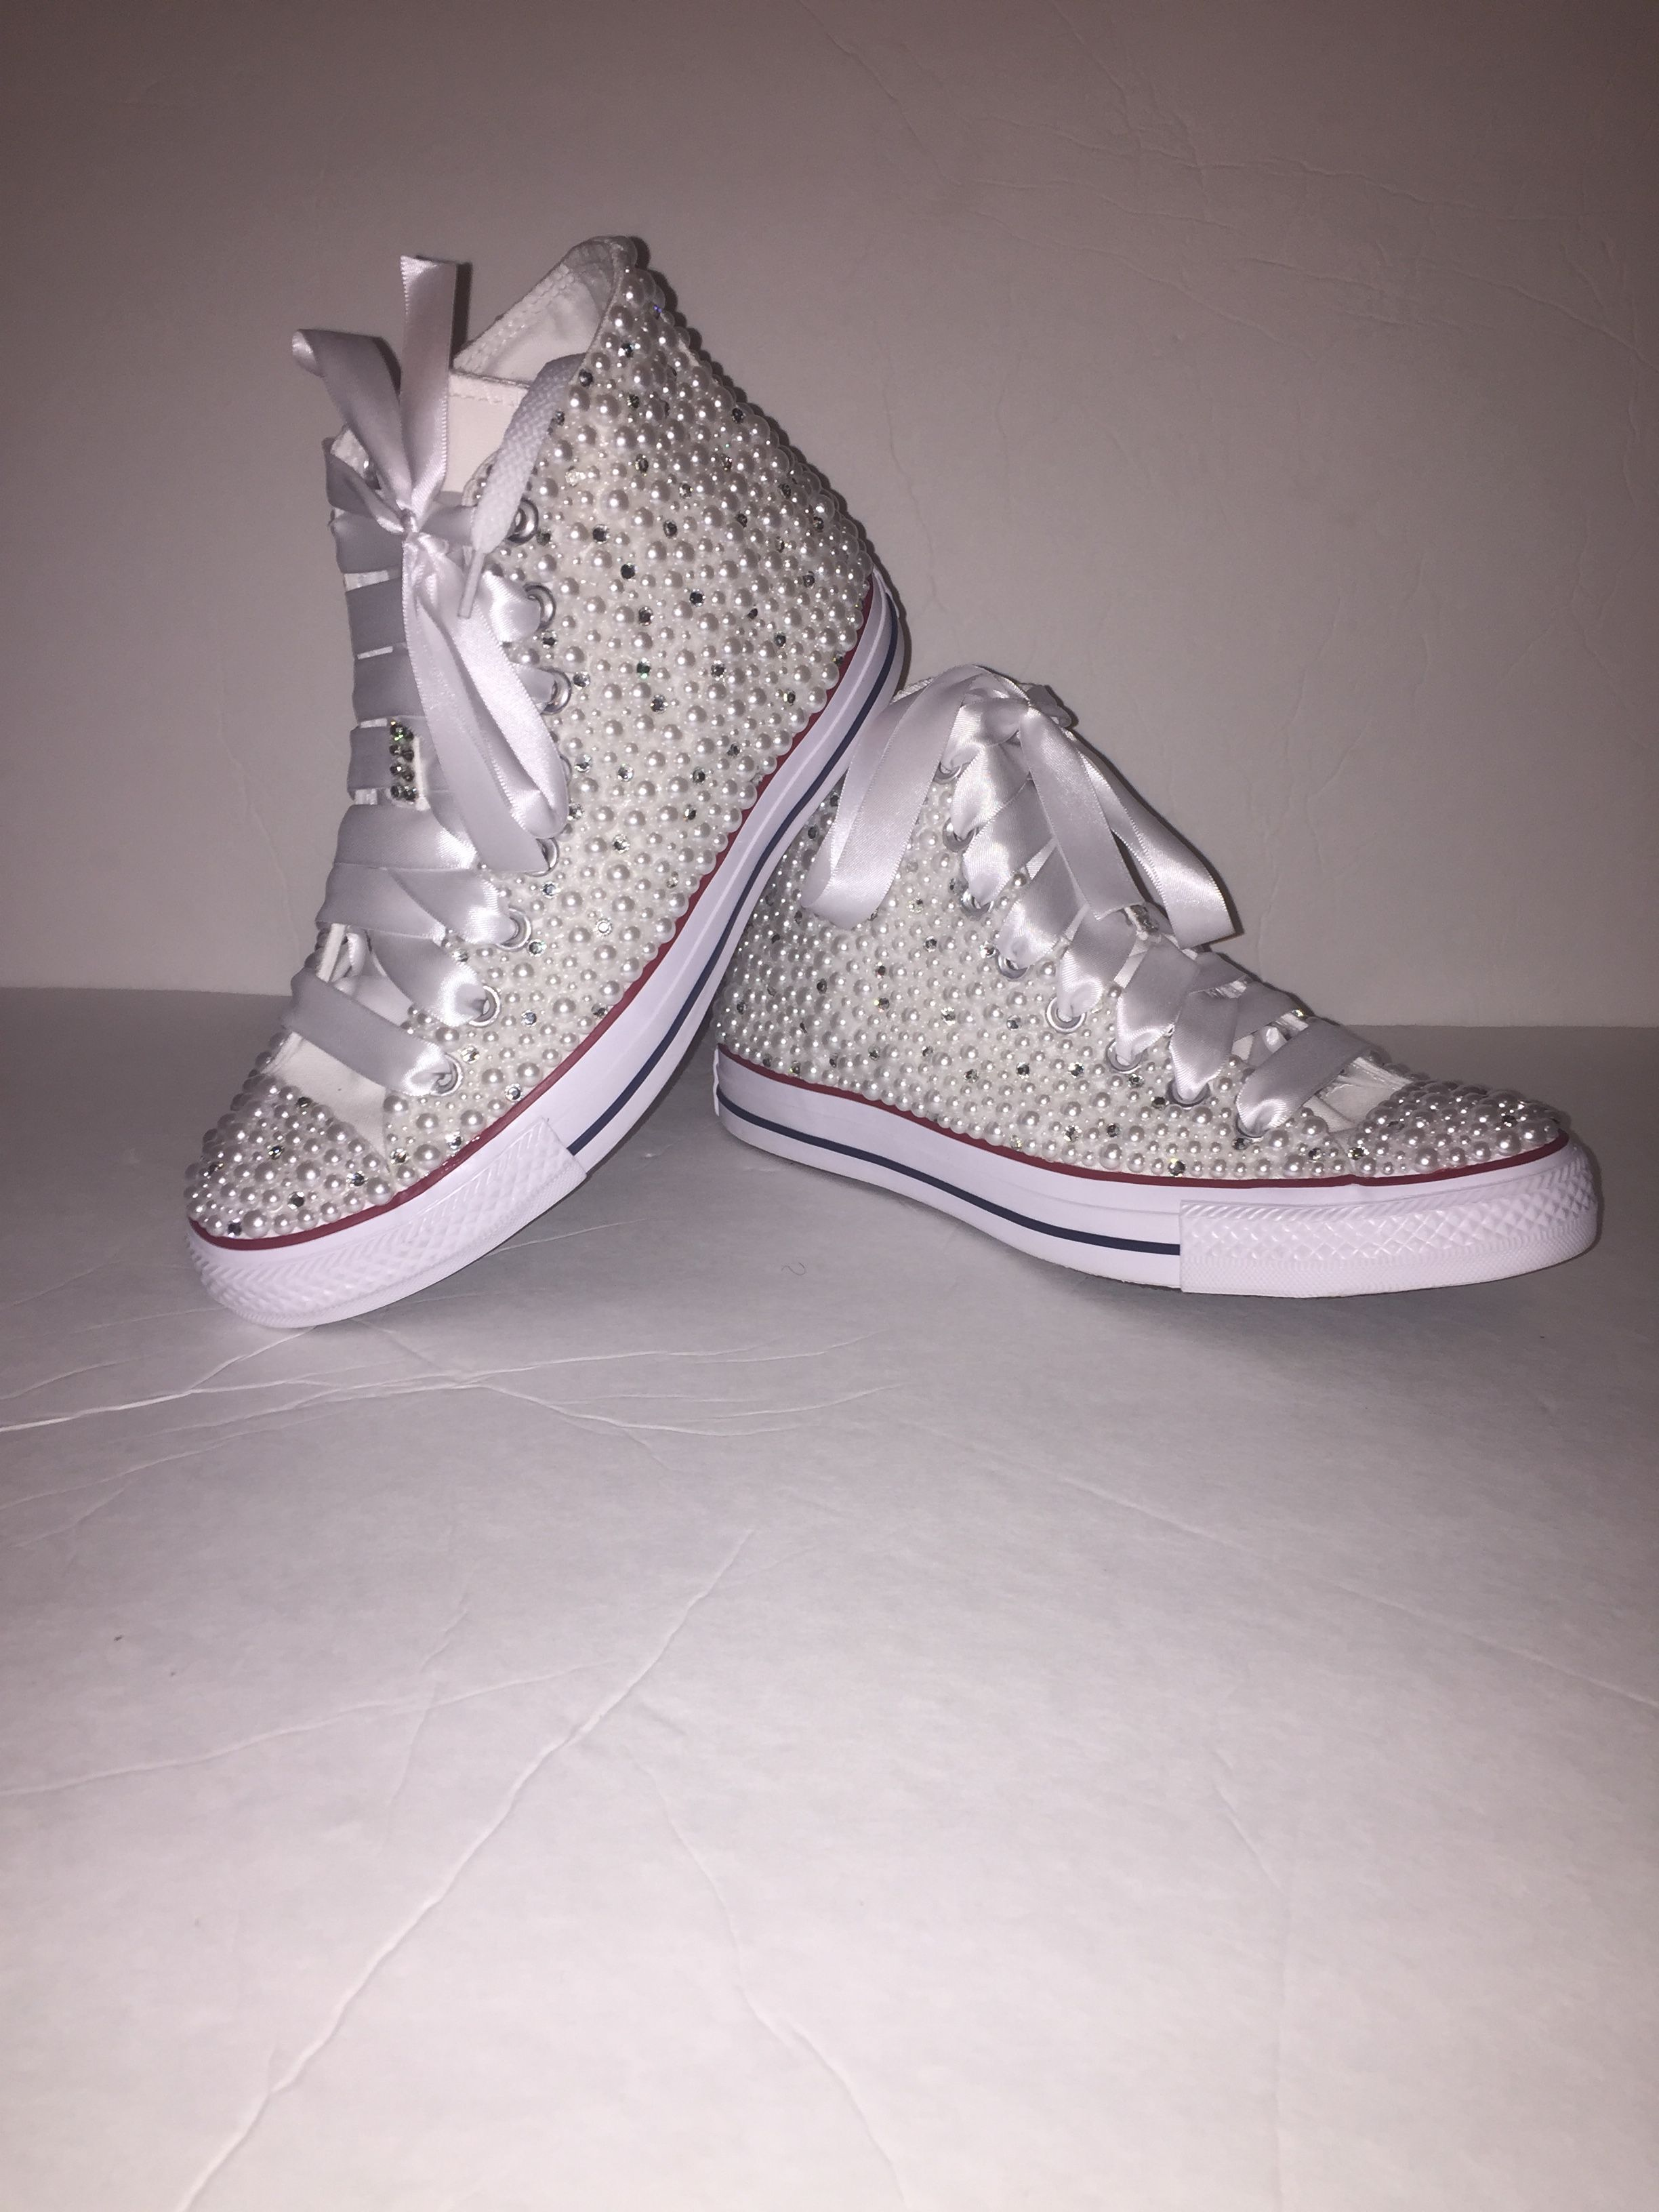 b660efe8d935a KIDS White Bling All Star Chuck Taylor Sneakers High-Top | White ...